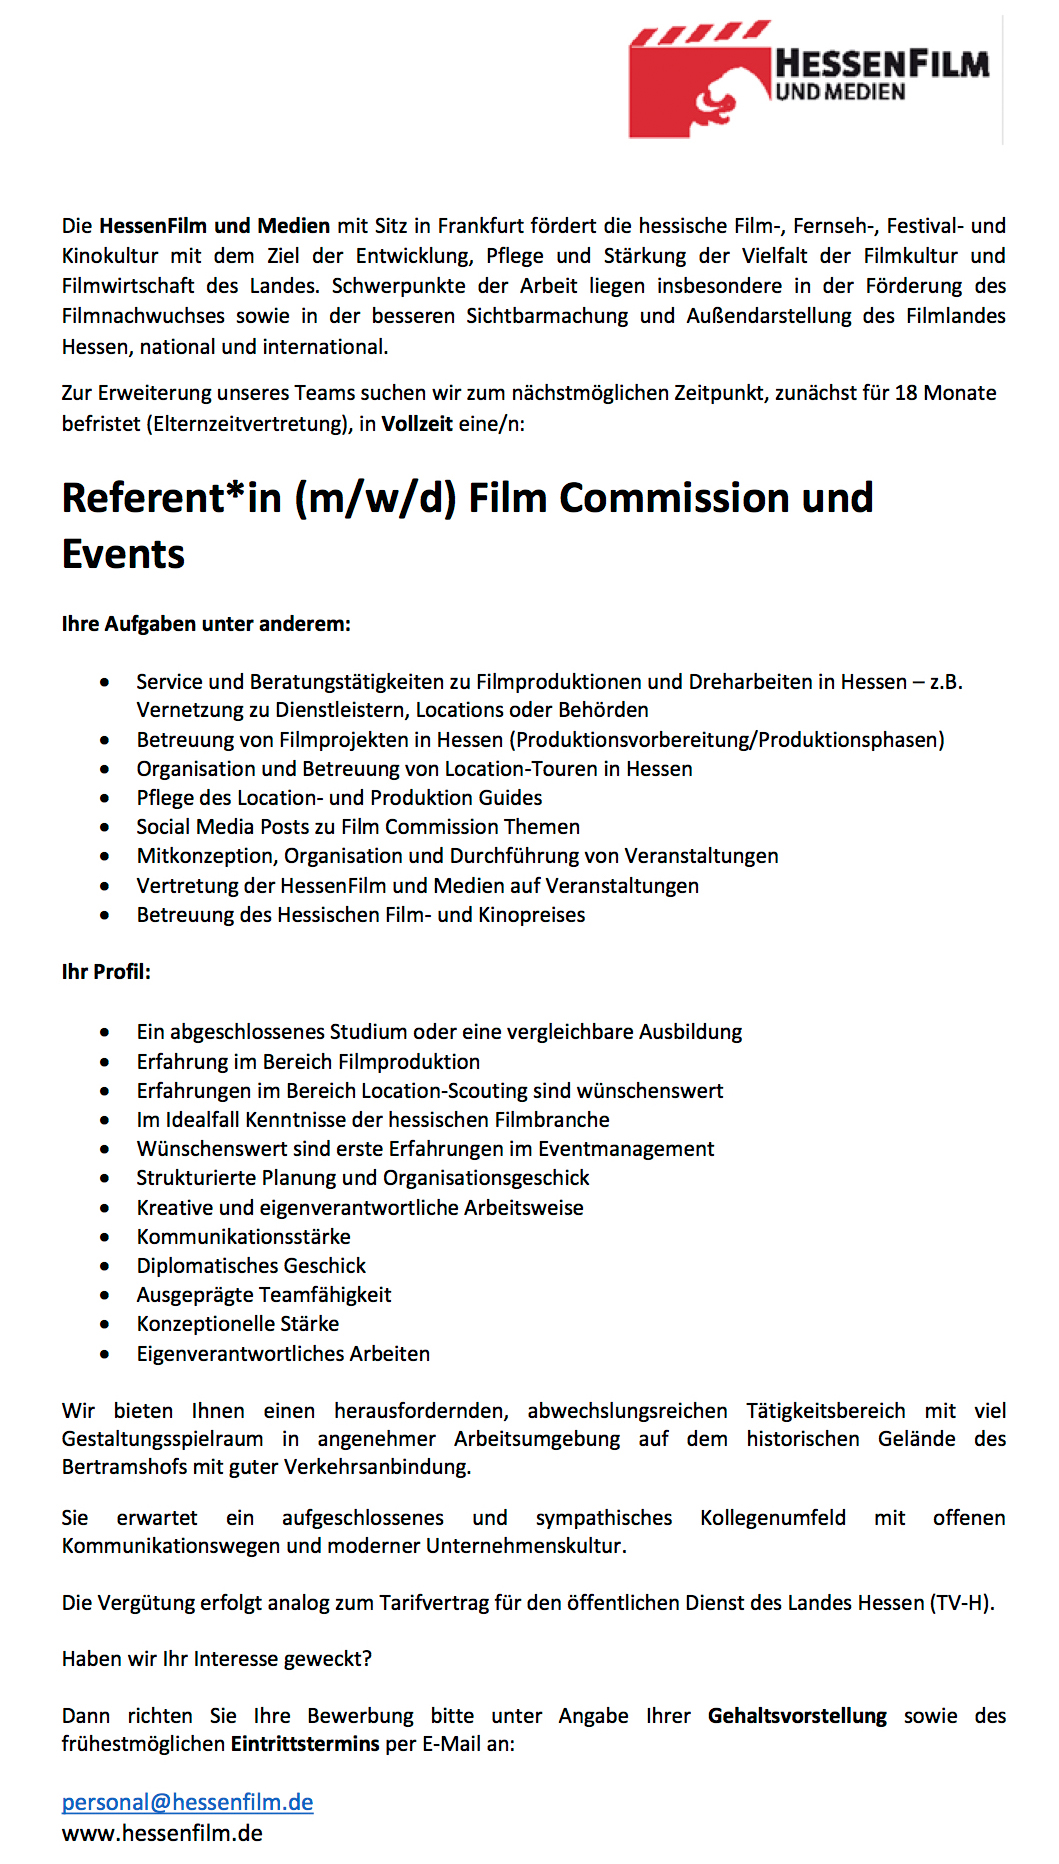 Referent*in (m/w/d) Film Commission und Events